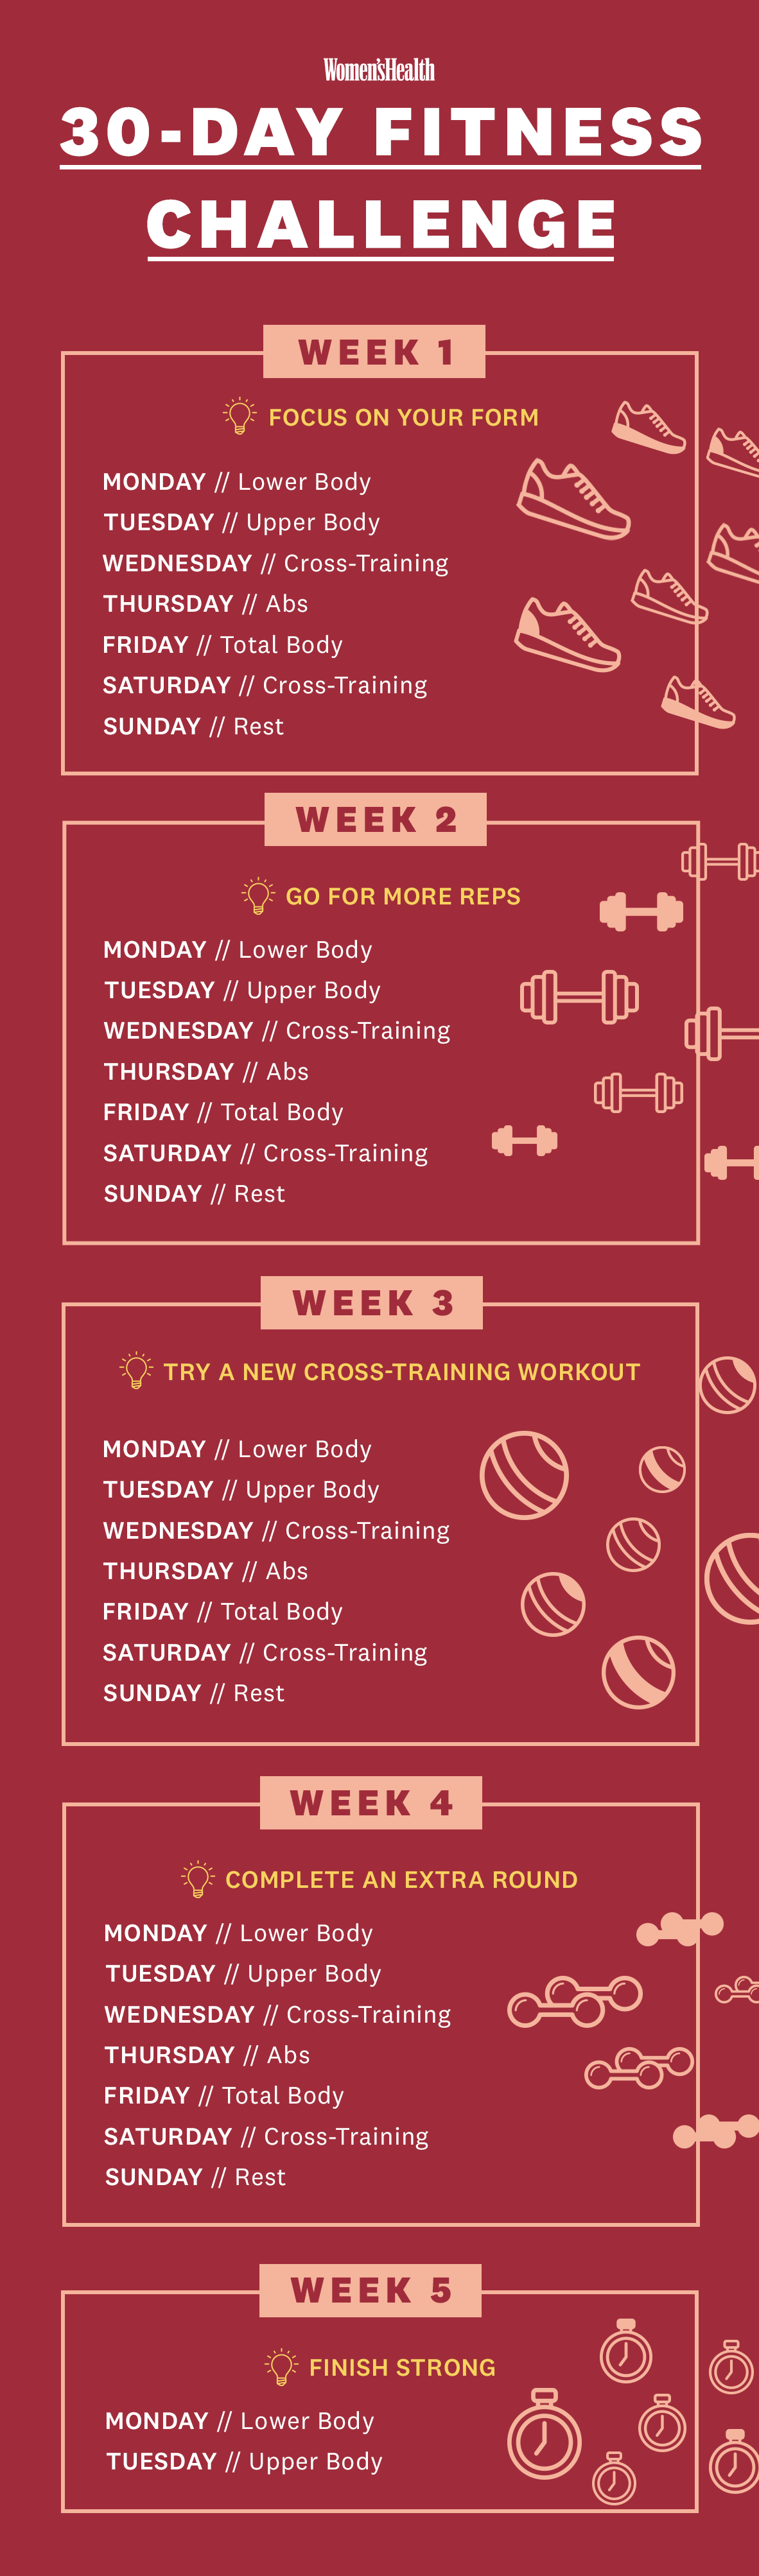 The 30-Day Fitness Challenge You Need To Try